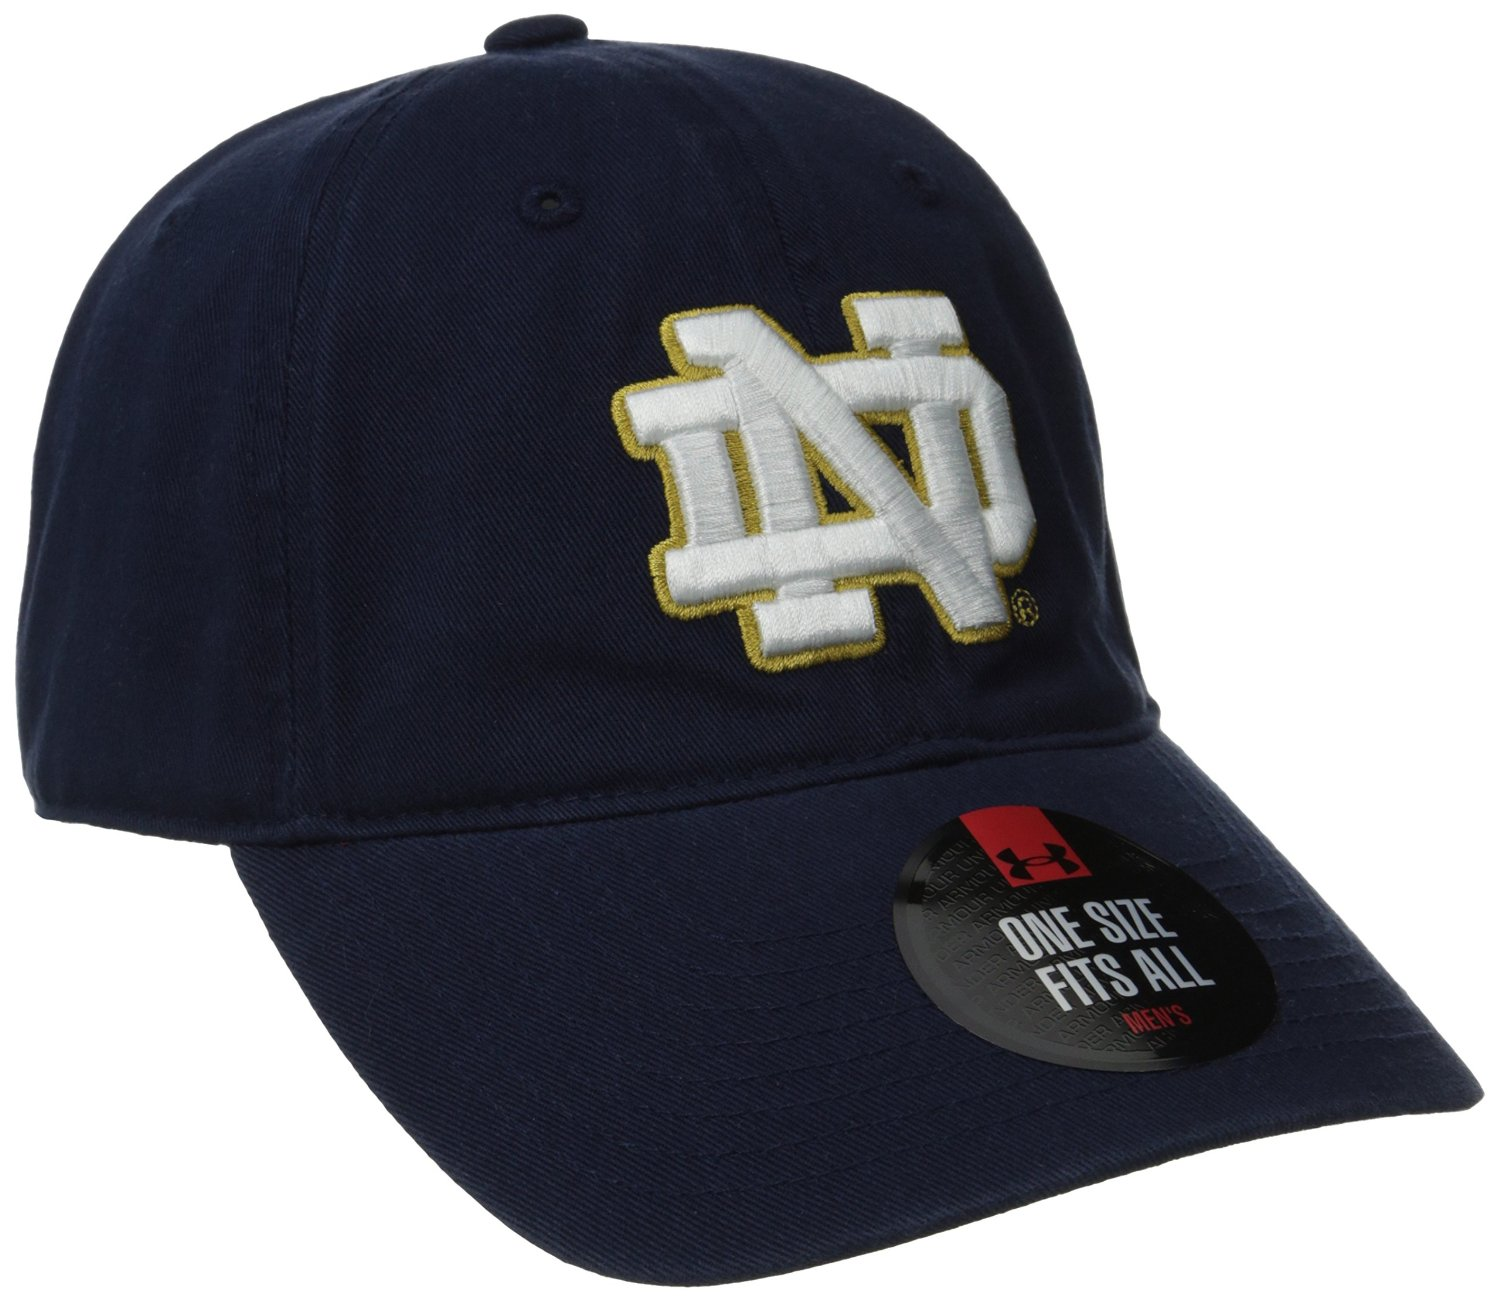 half off 0dc6b 2a109 Under Armour NCAA Notre Dame Fighting Irish Relaxed Cotton Adjustable Hat  Cap